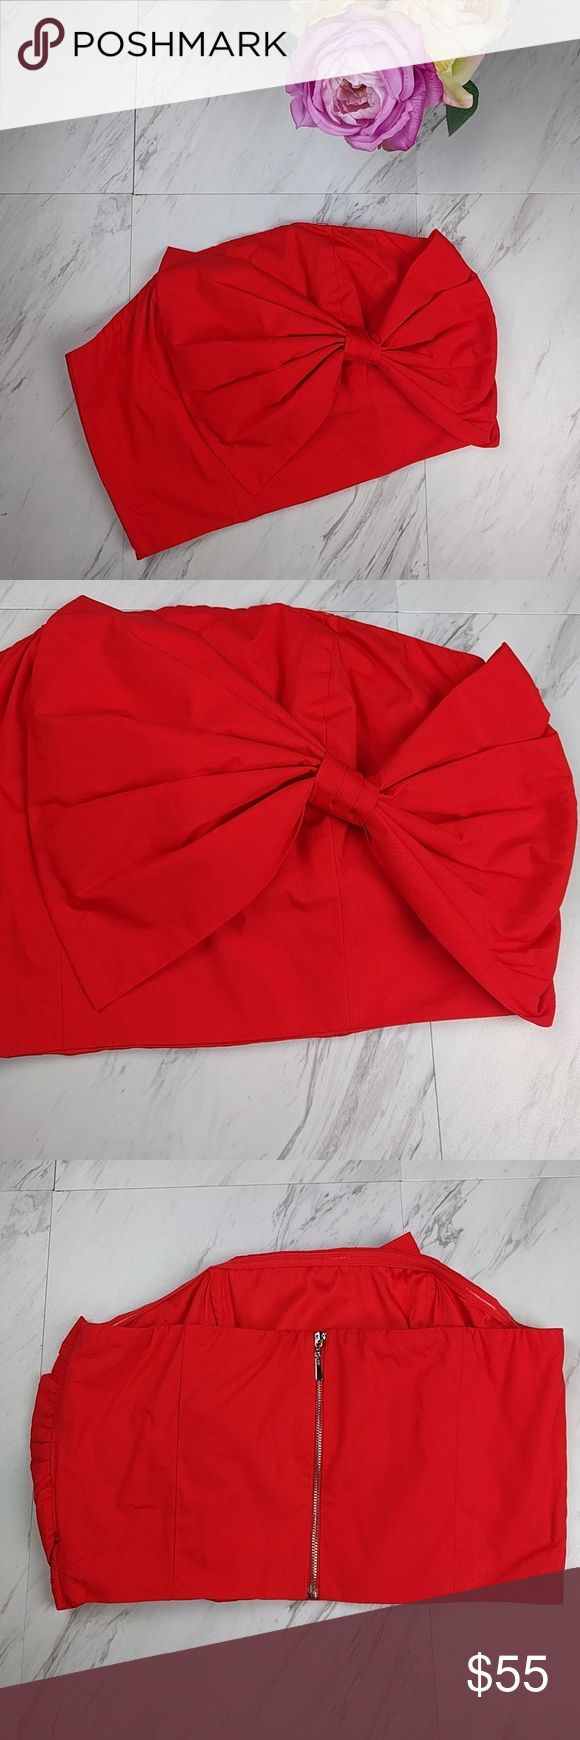 """NWT Gianni Bini Red Bow Crop Top $69 NWT Gianni Bini Red Bow Crop Top SZ S (C21) •Authentic  •Lined •Crop top •Red Bow (to the side) •Exposed back zipper  •B: 15"""" •NWT •Originally $69 •Fast shipping   Measurements are an approximation  Shoes and purse are also listed 10% off 2 or more bundled items Gianni Bini Tops Crop Tops"""